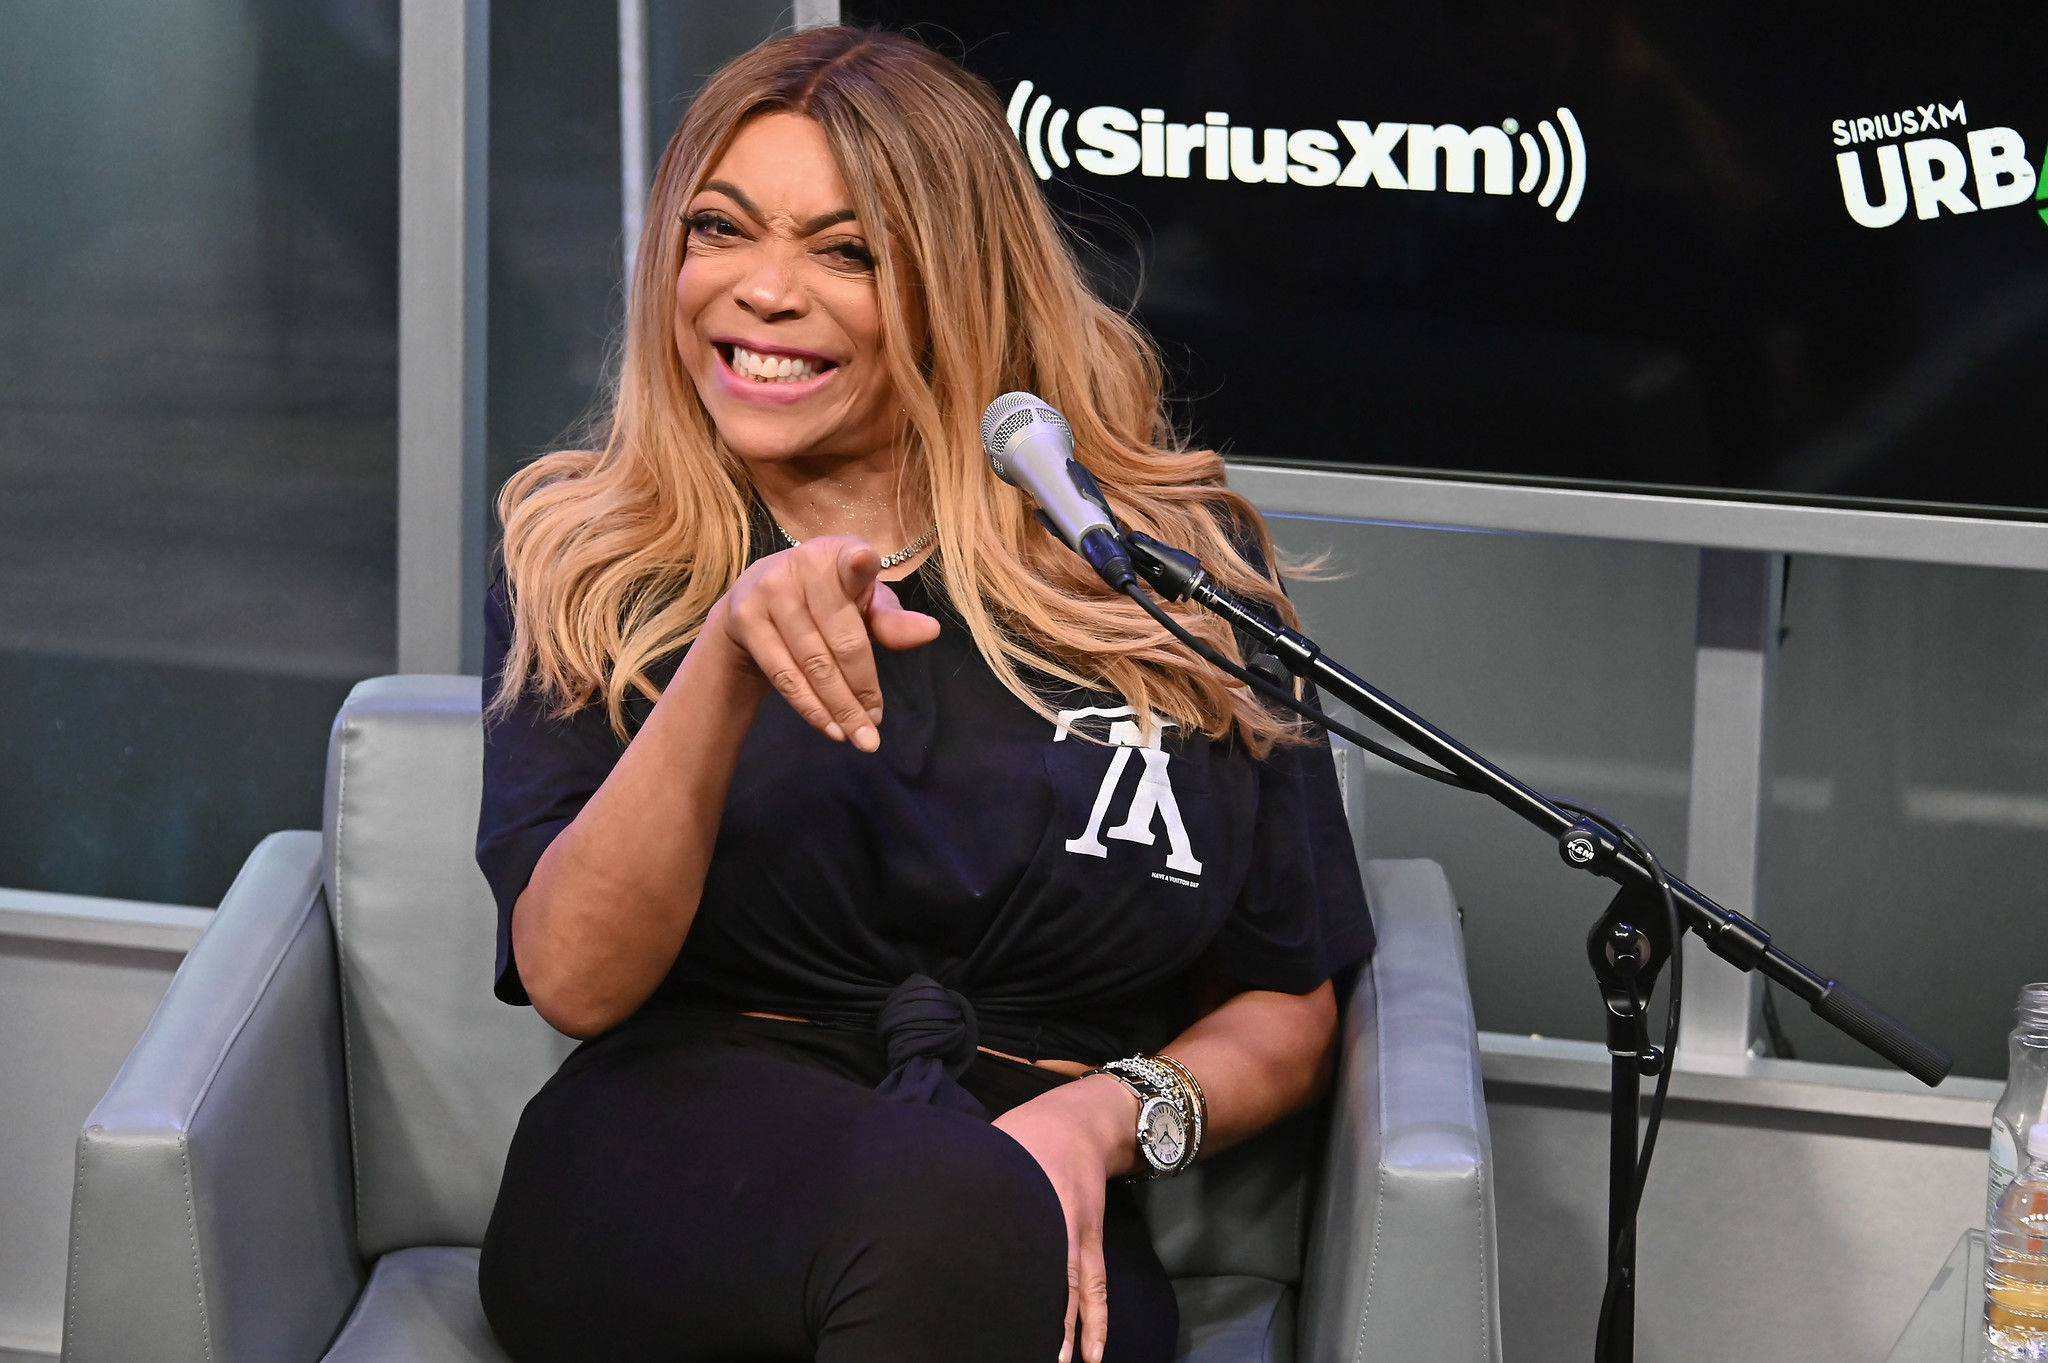 Guess Who's Back! Wendy Williams returns to daytime airwaves, portions of talk show taped from her home